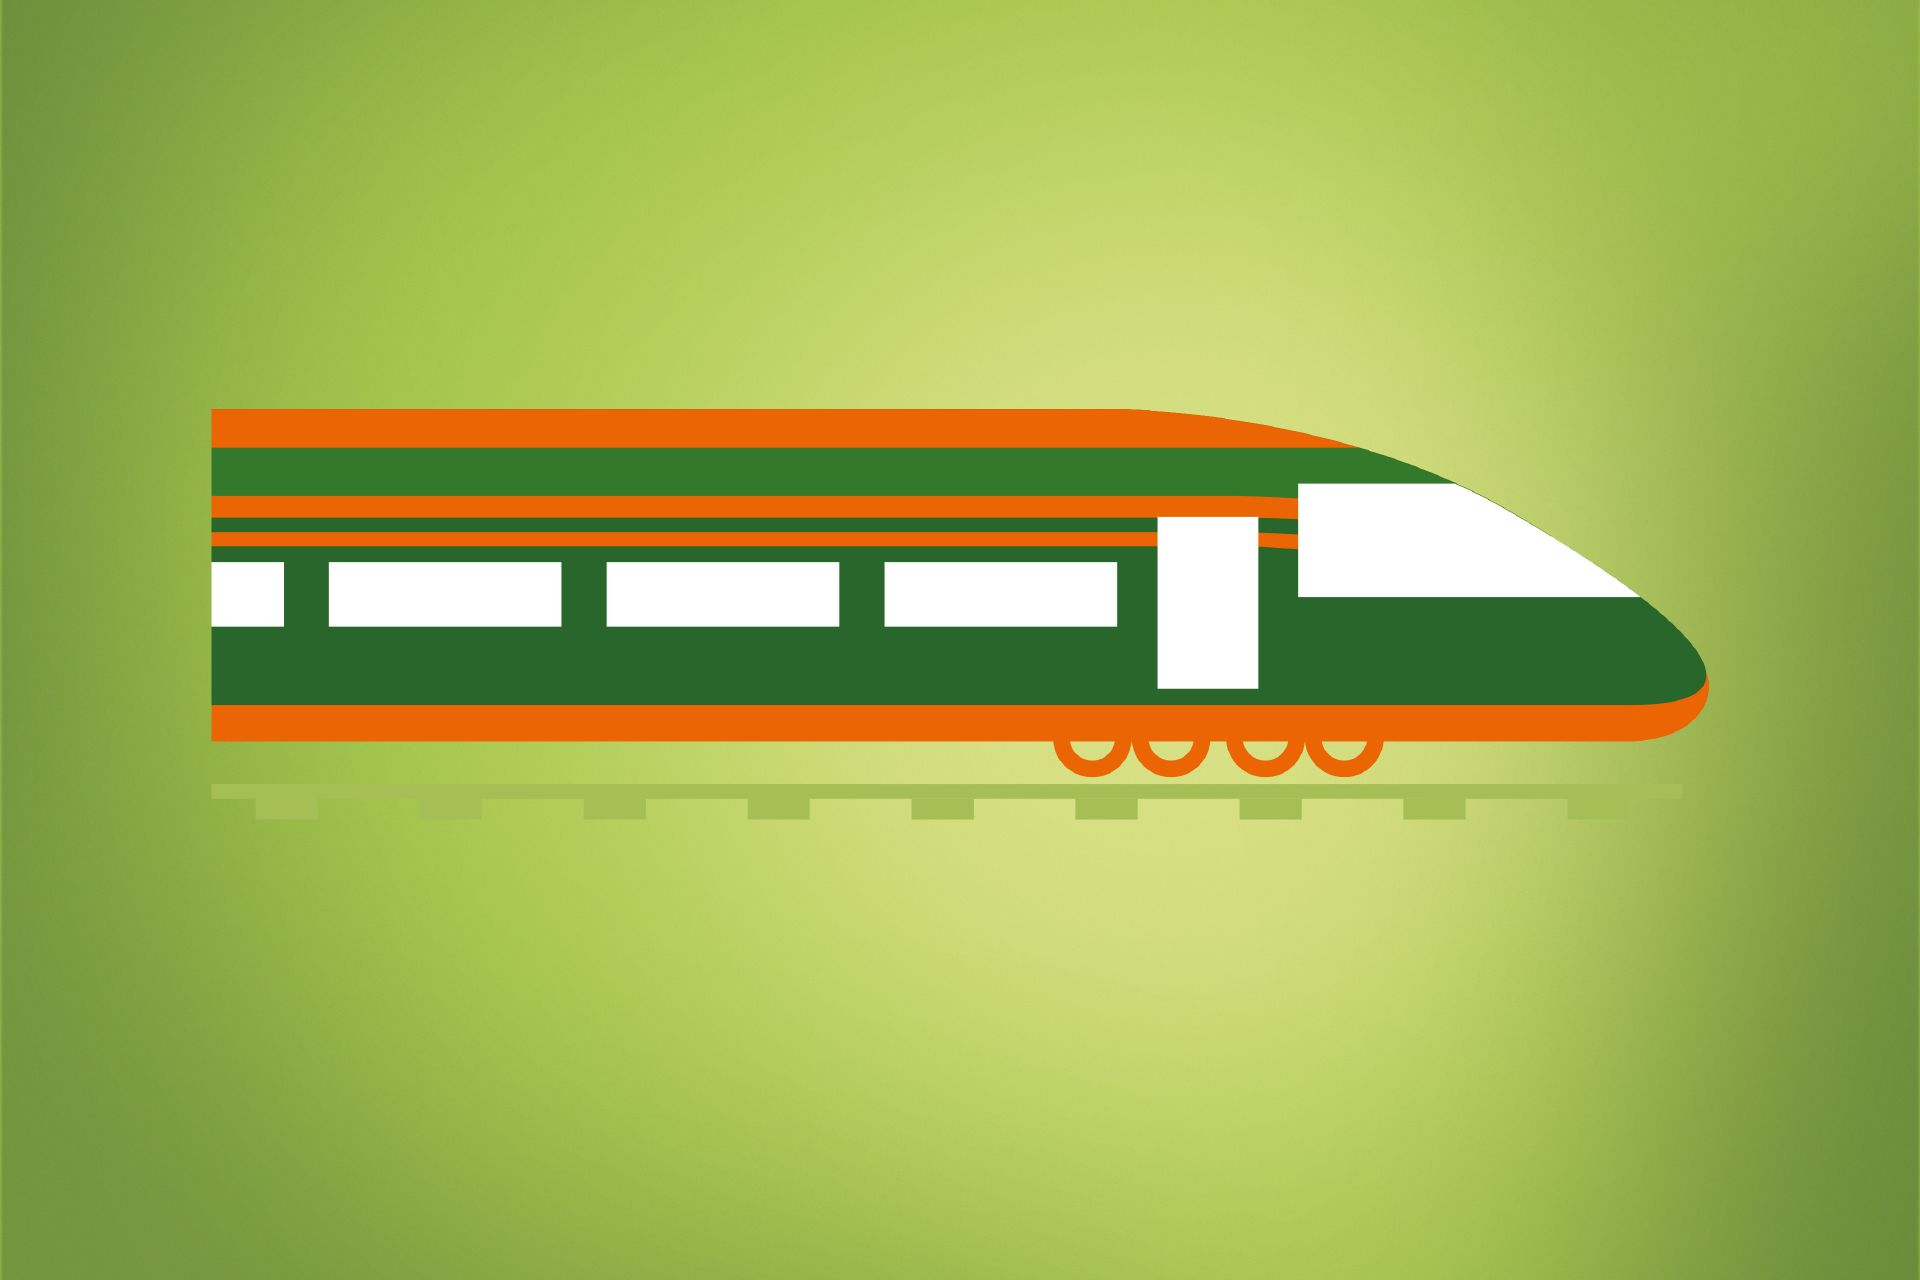 Icon of a train